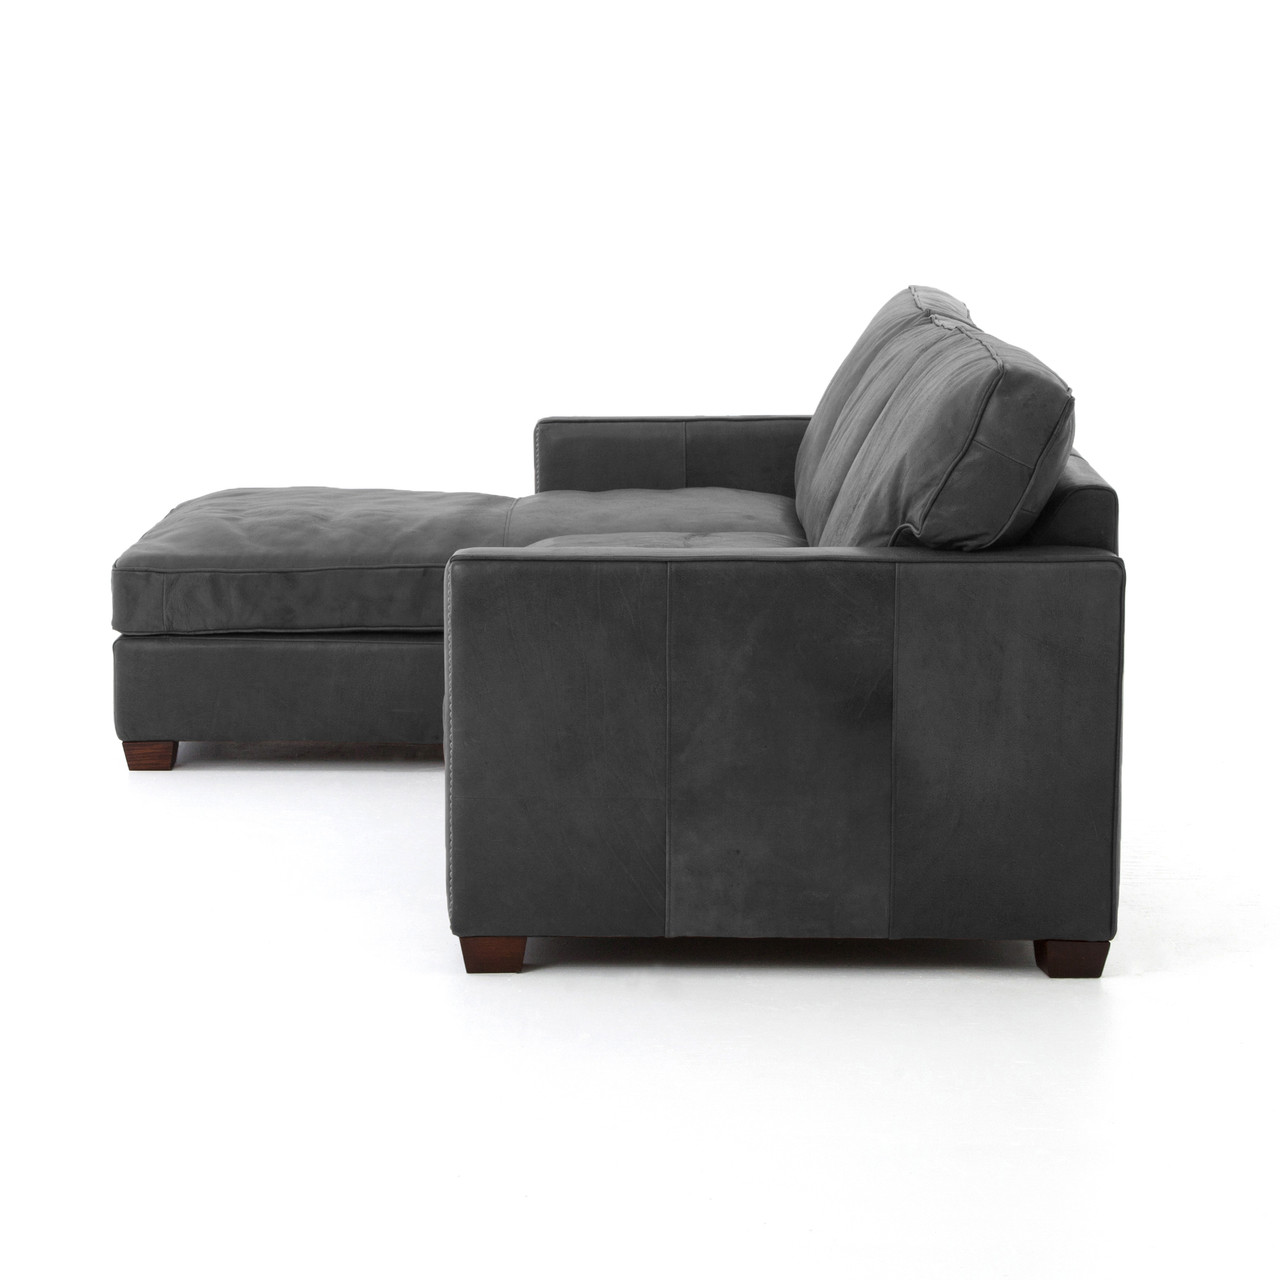 Larkin vintage black leather sectional sofa with chaise for Black leather sectional sofa with chaise